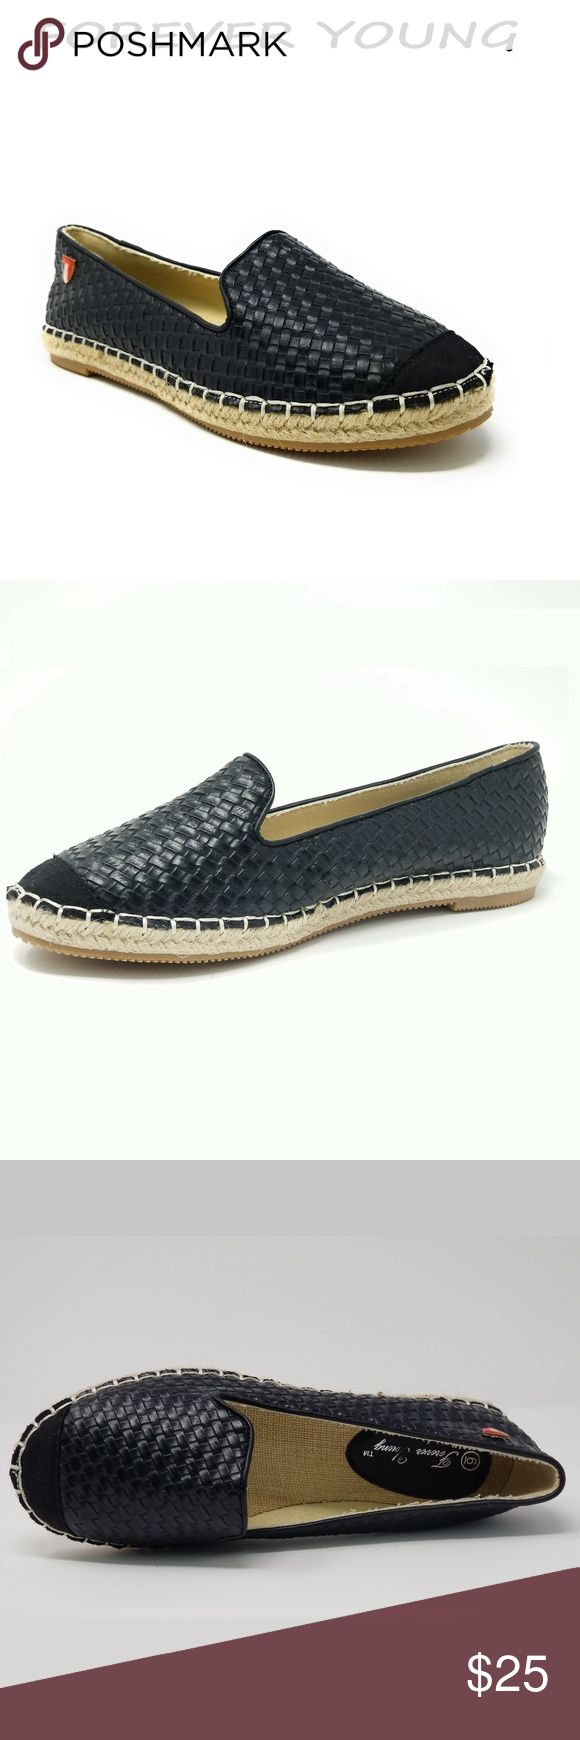 """Women Wicker Espadrille Flats, E-2601, Black Brand new Forever Young super popular stitched espadrille smocking slippers with basket weave design. Extra soft insoles. Textured rubber outer sole for traction. Cute emblem in the back. 100% man made PU vegan leather. Measurements: sizes 6 through 8 are true to size. Sizes 8.5 - 11 run small. Standard 3 inch width. Size 8 measures 9.5 inches, sz 8.5 = 9 3/4"""", sz 9 = 10"""", sz 10 = 10.5"""", size 11 fits a true size 9.5 wearer. Slip on these loafers…"""